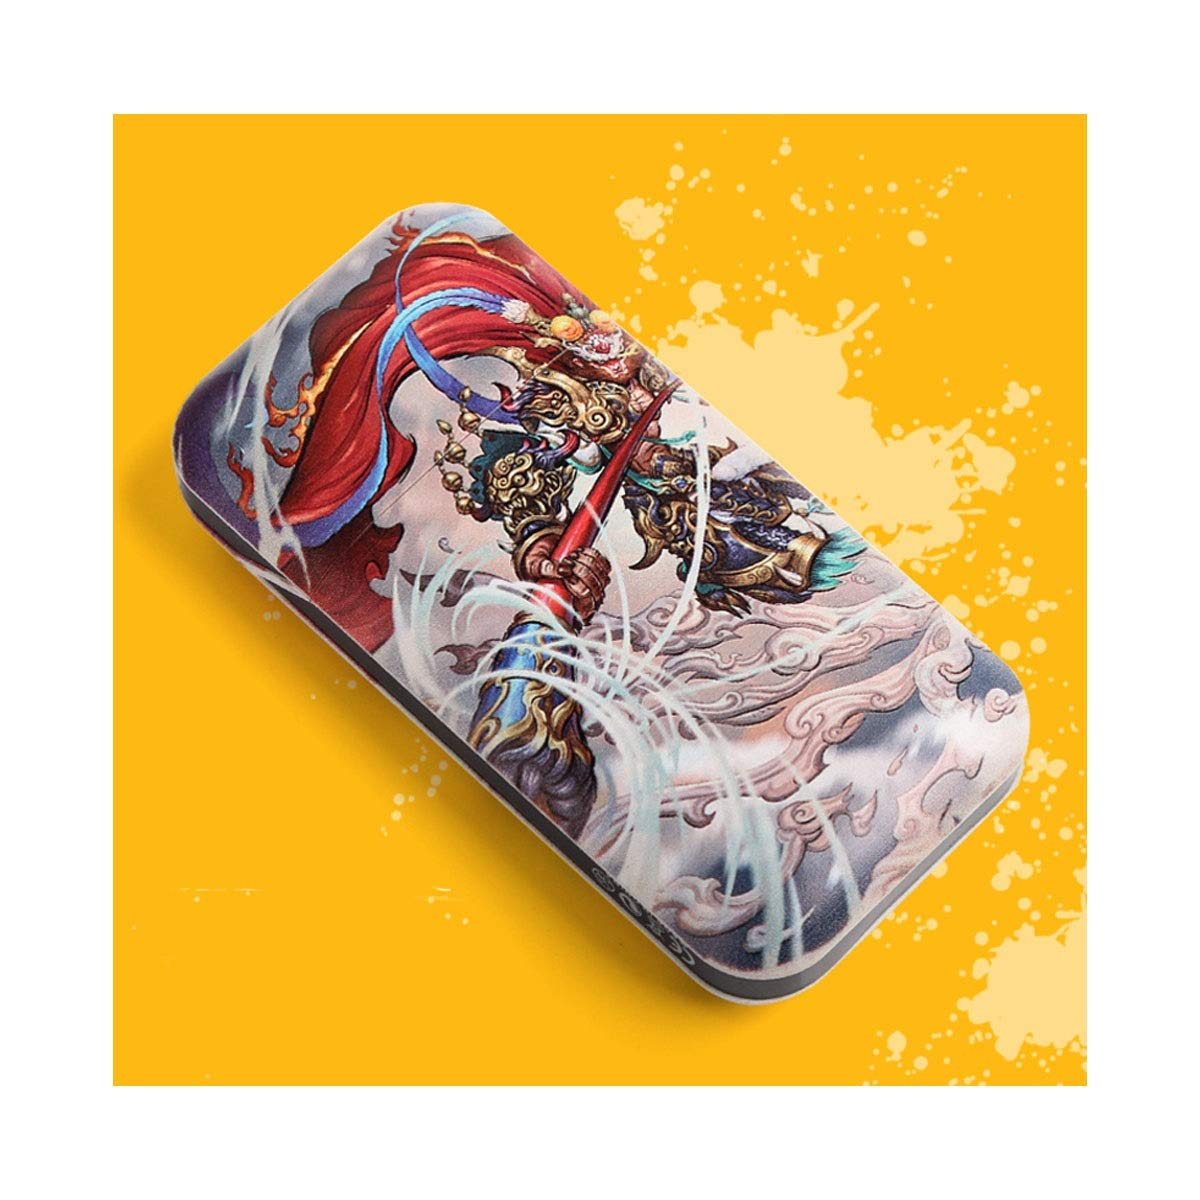 ZHONGYUE Cigarette Case, Automatic Cover, Portable Creative Cigarette Case, Various Styles Unique Design, Sturdy and Lightweight. (Style : B)